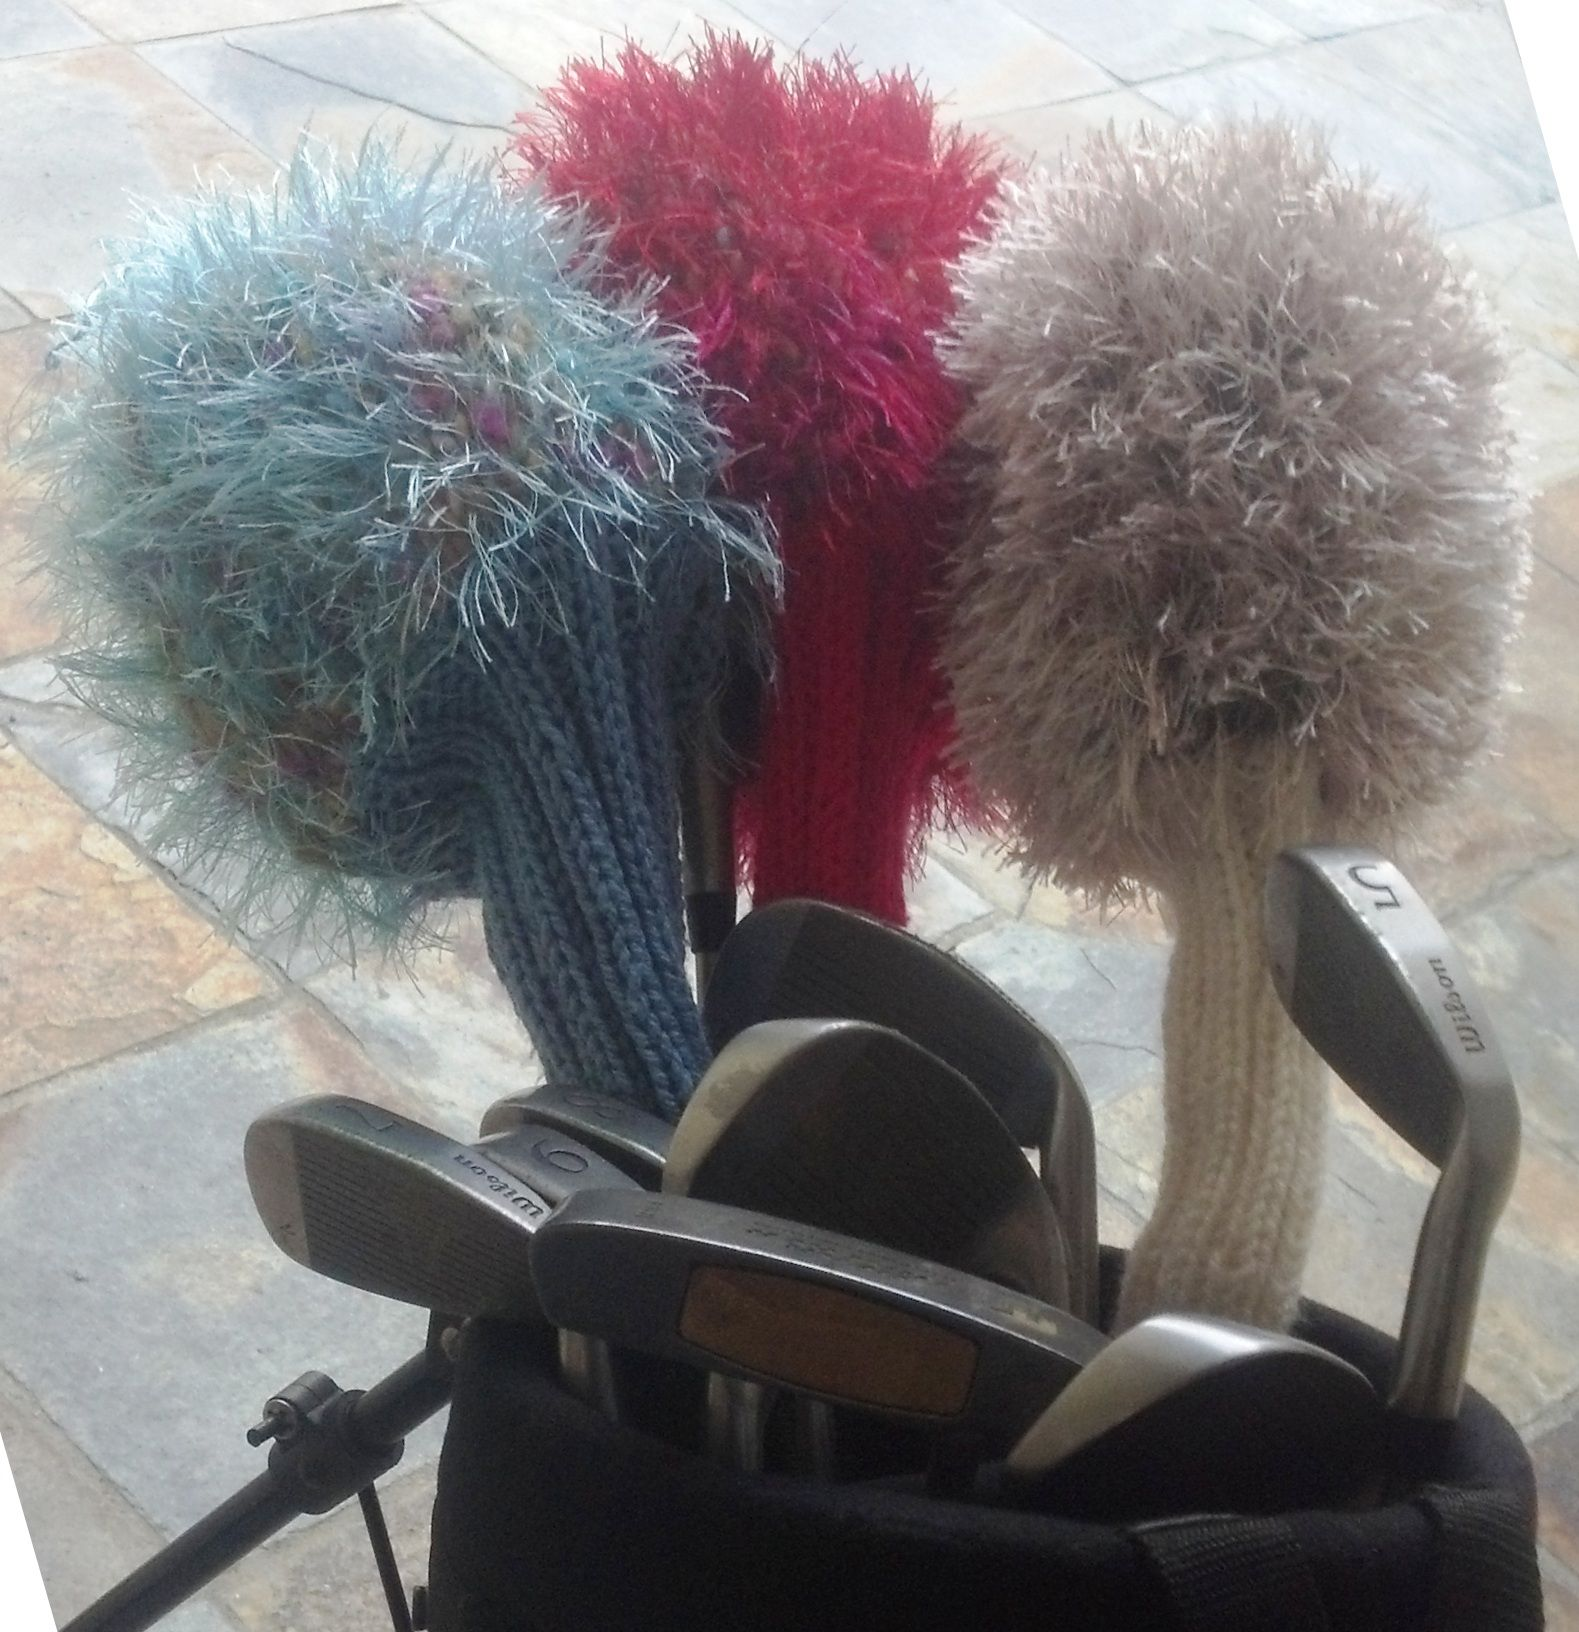 Golf Club Covers and a pattern review | Knit patterns, Patterns and ...